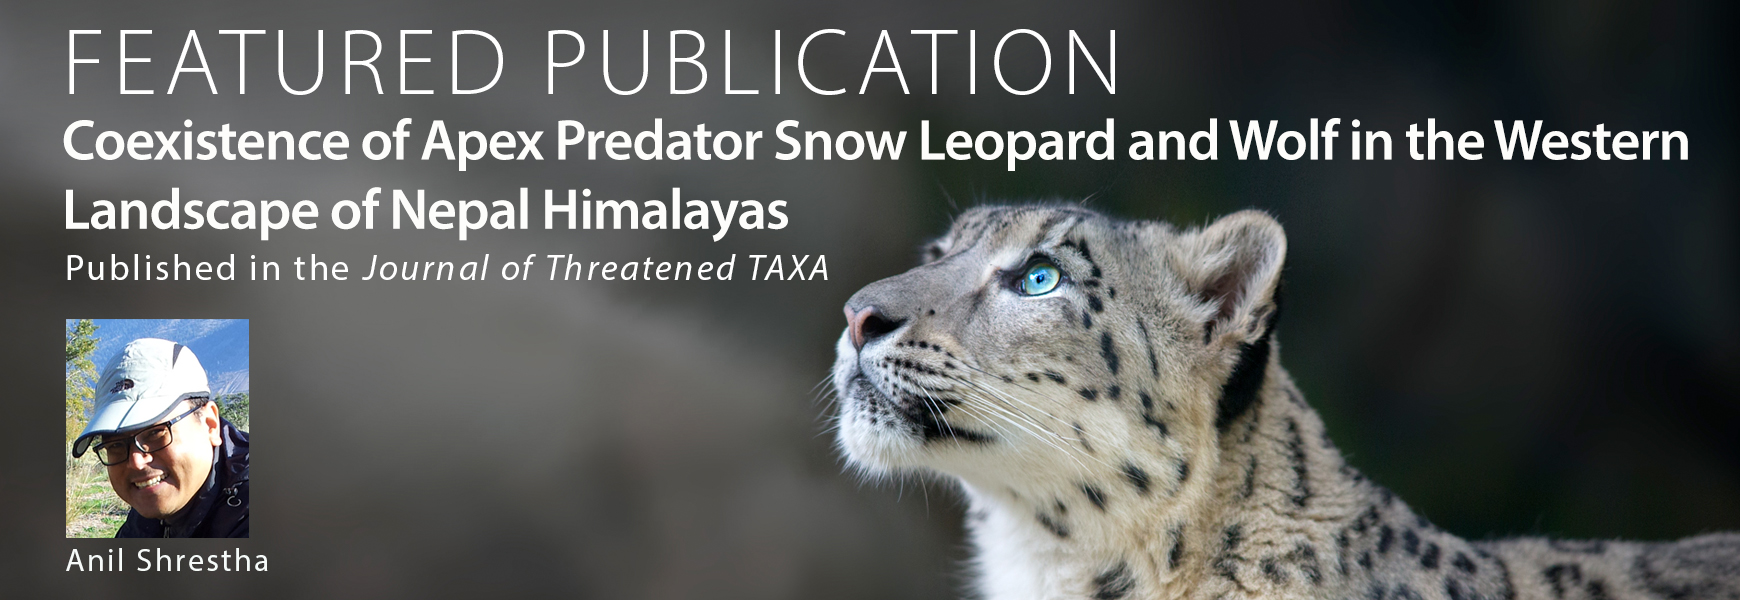 Featured Publication - Anil Shrestha Snow Leopard - Banner